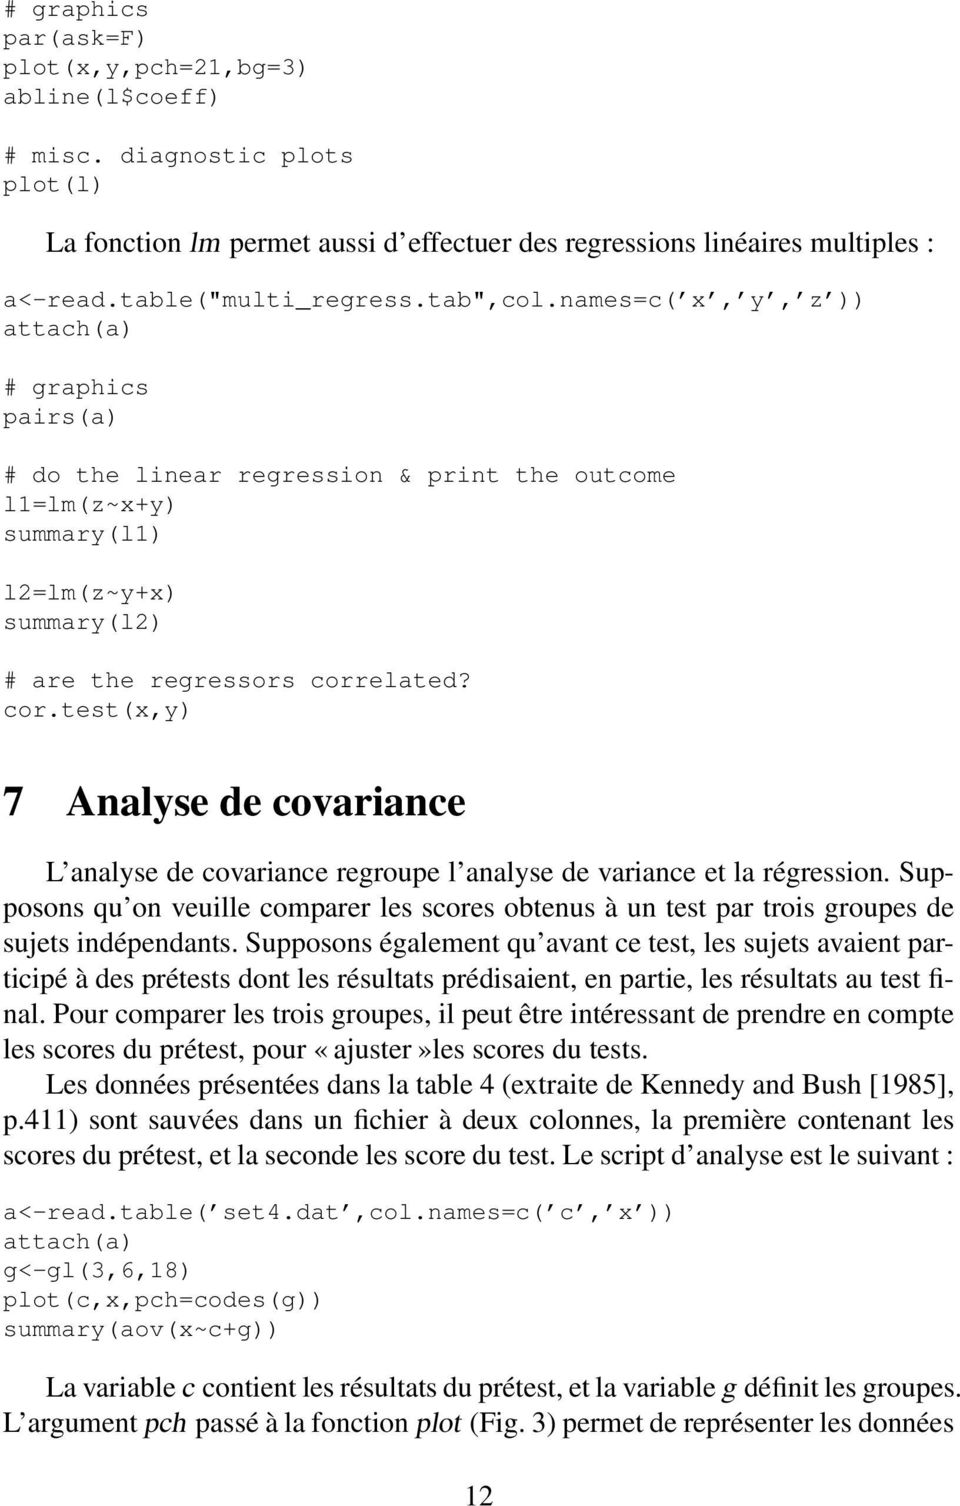 elated? cor.test(x,y) 7 Analyse de covariance L analyse de covariance regroupe l analyse de variance et la régression.